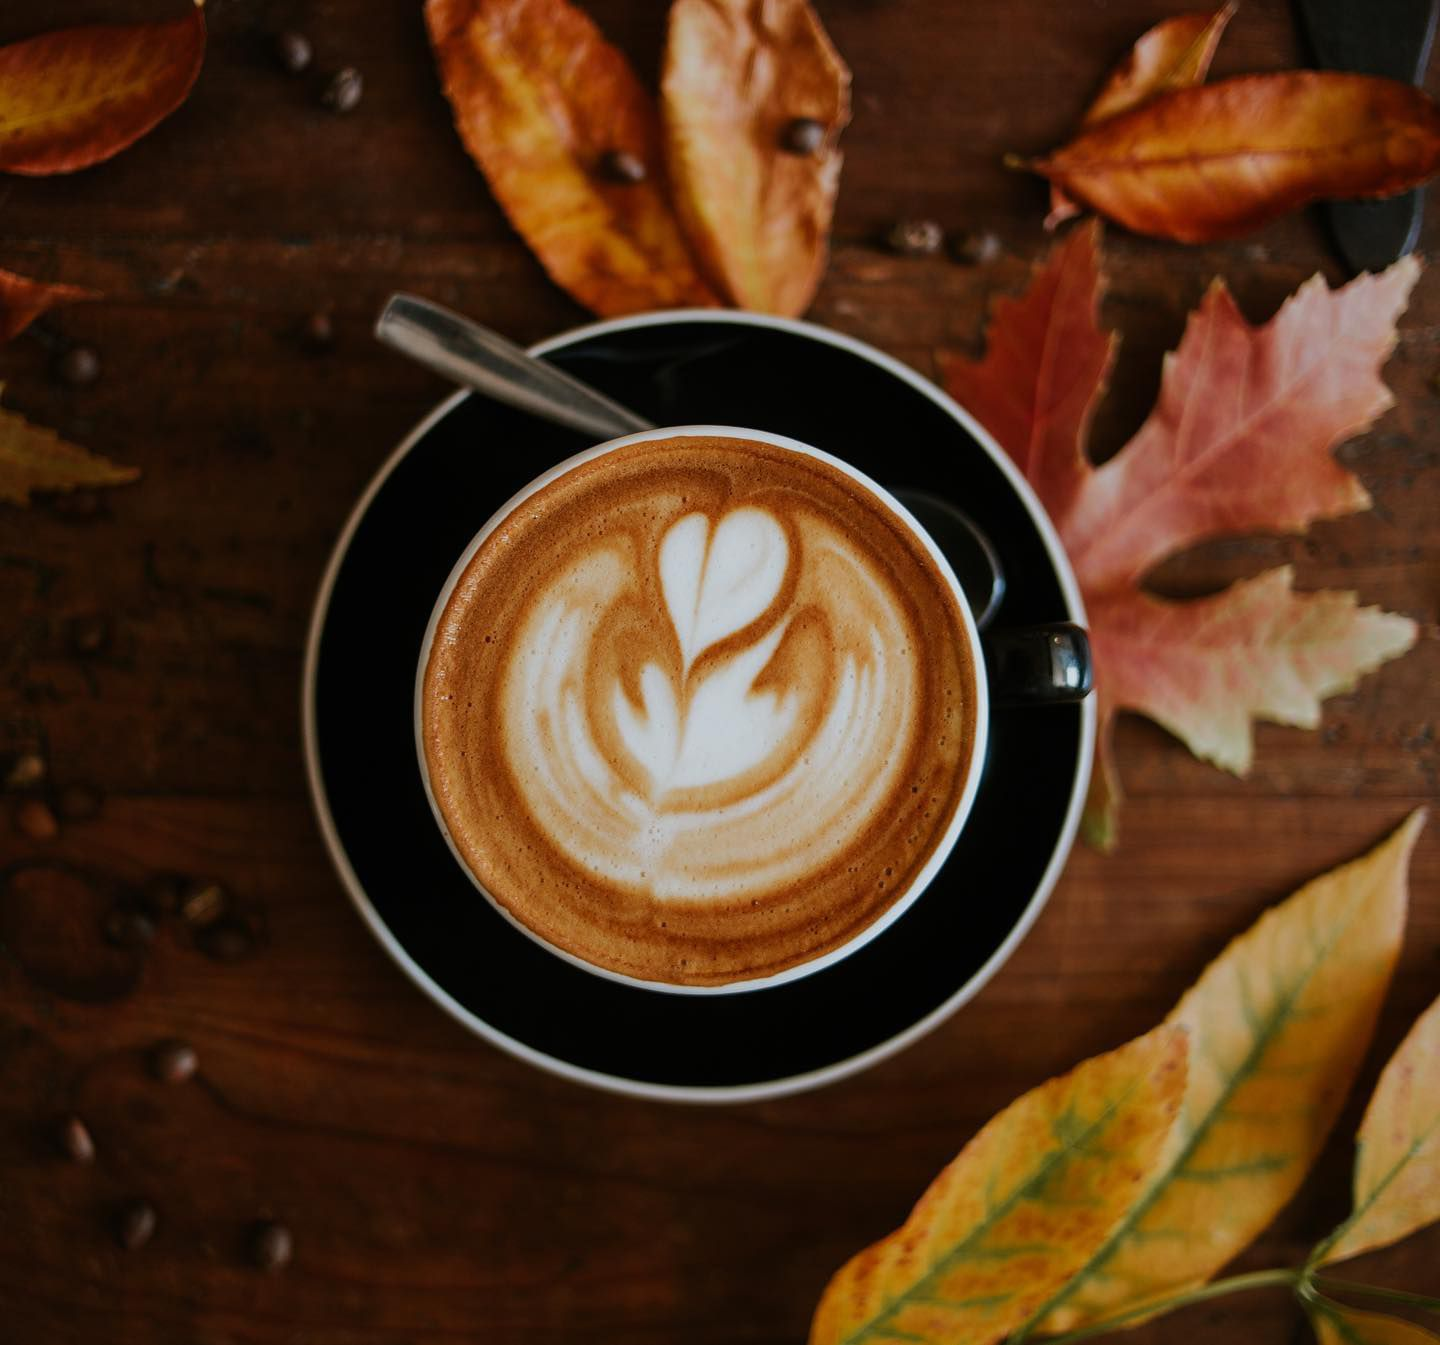 Latte art with leaves behind it